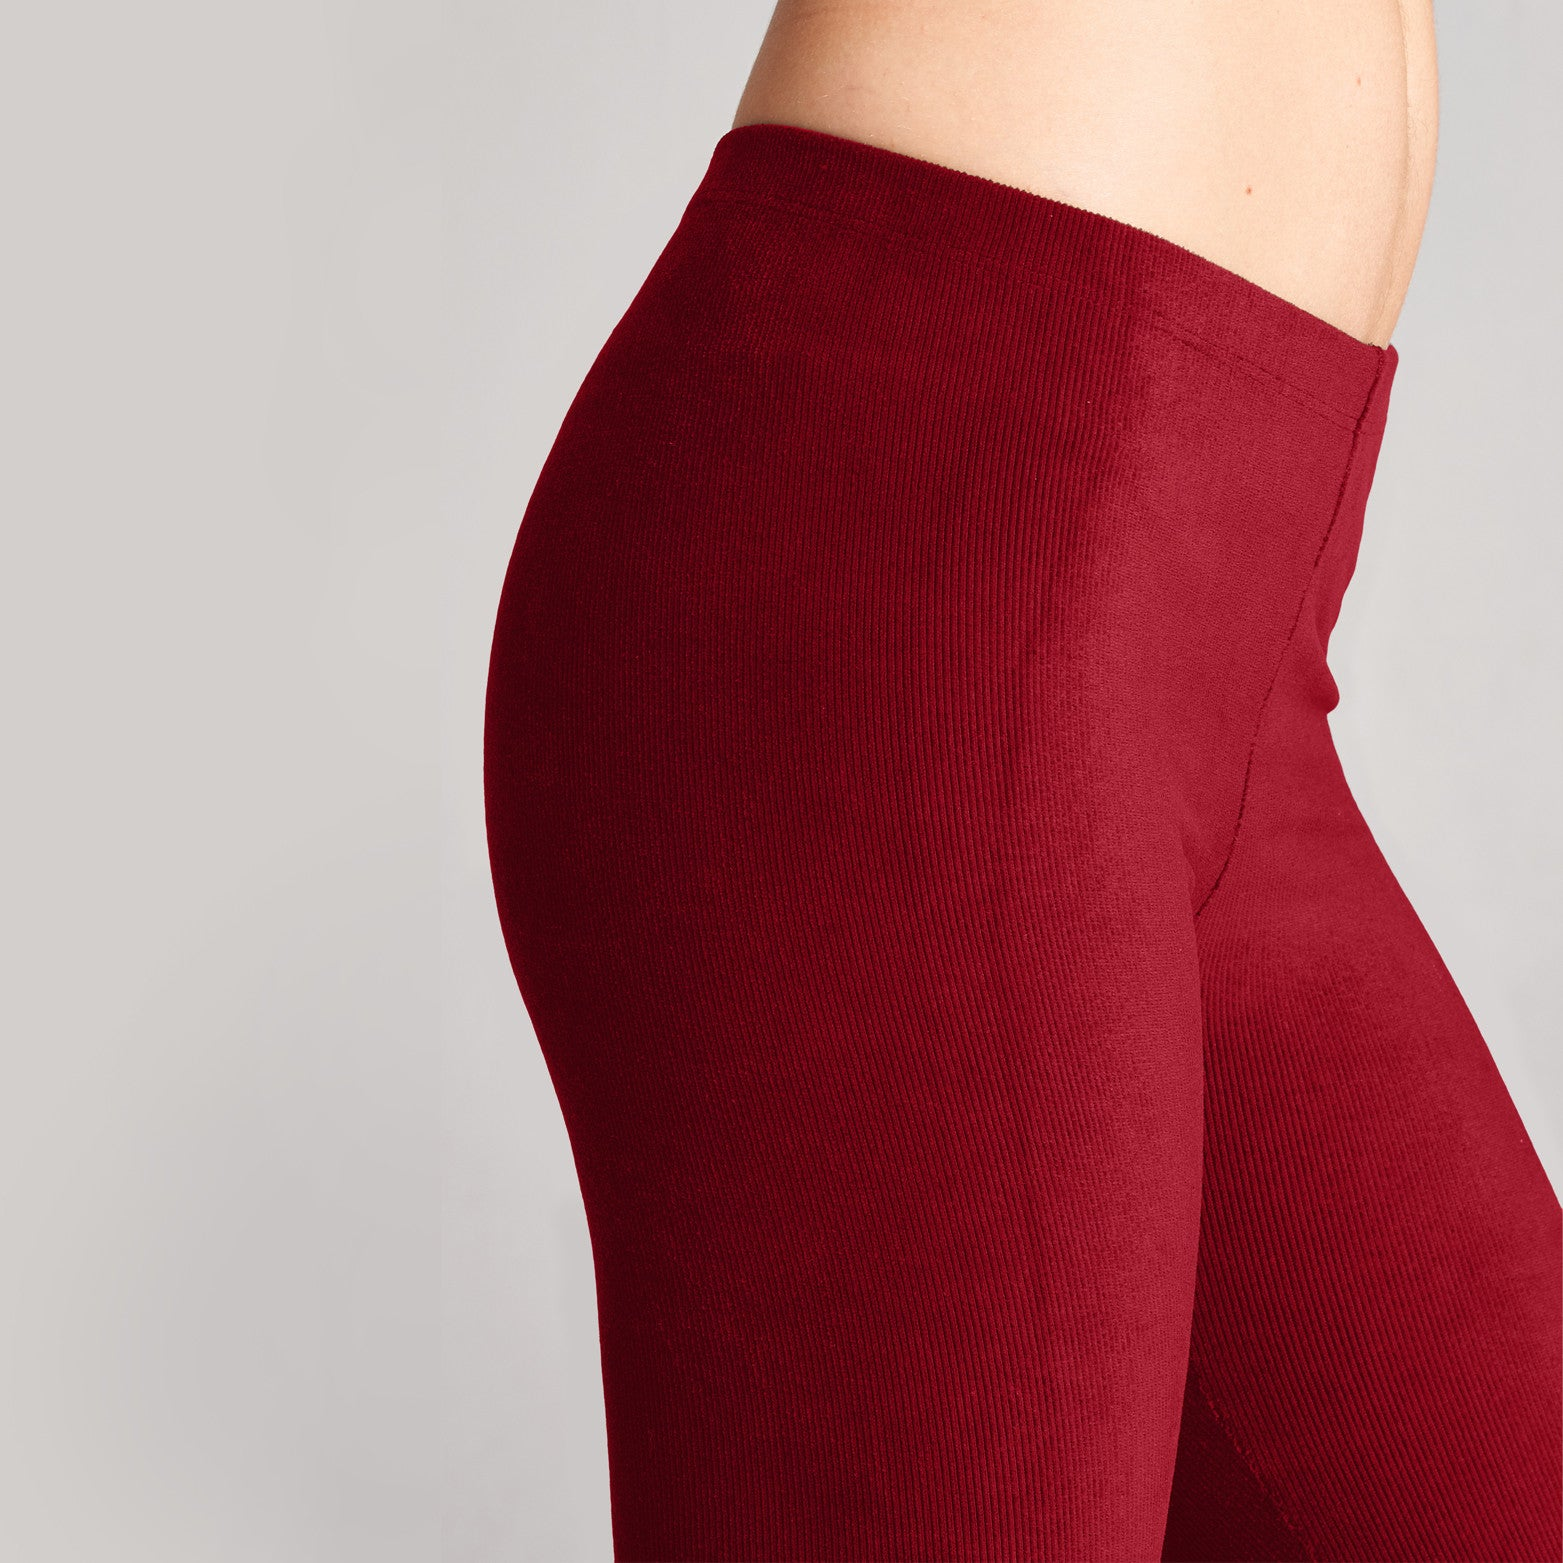 Corduroy Leggings - Love, Kuza